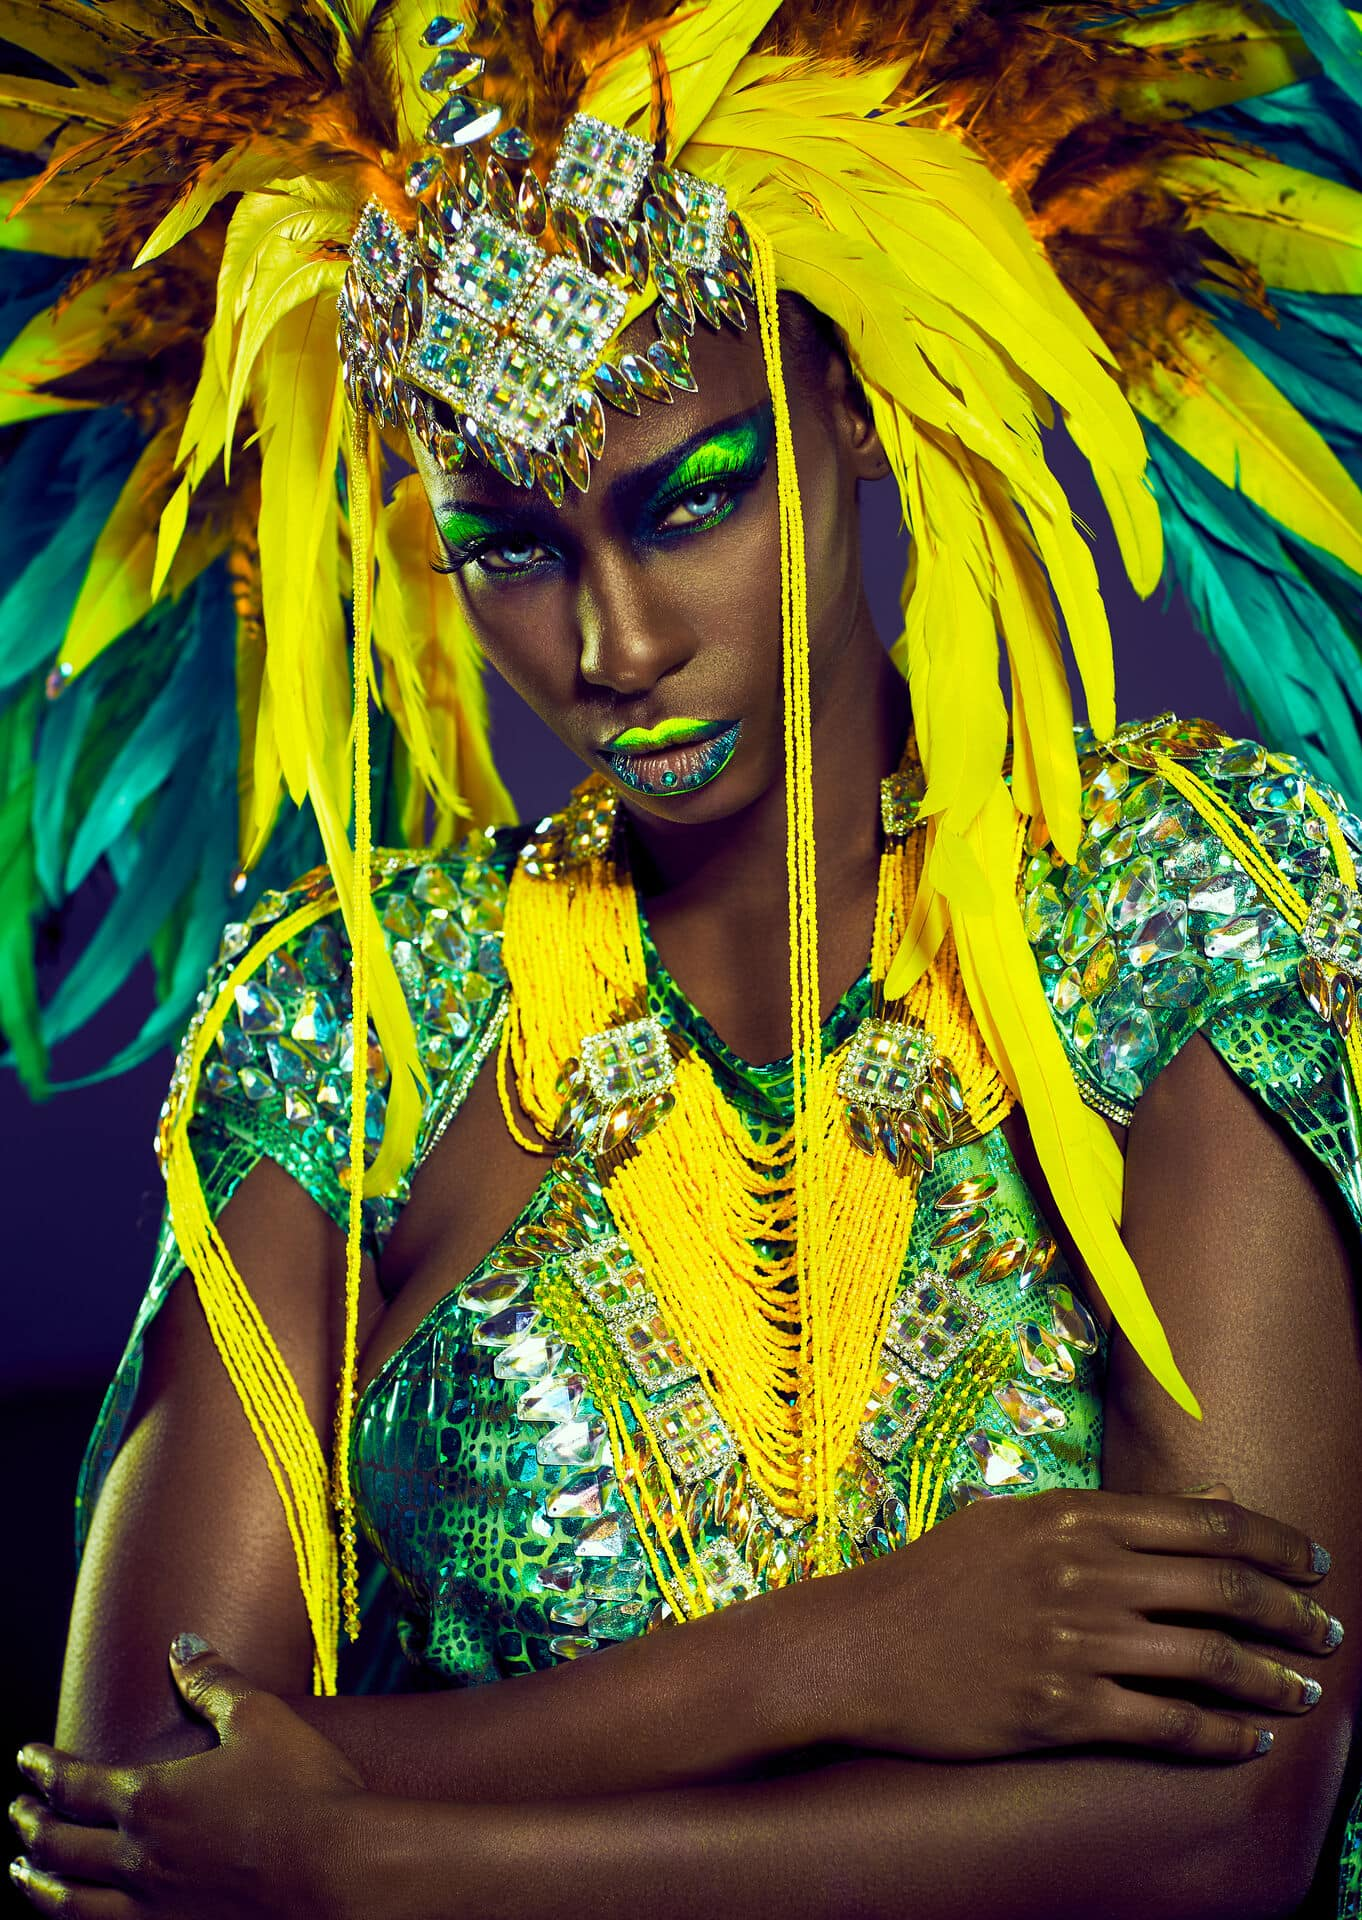 Fashion Campaign Photography London. Carnival costume. Photo by Jarek Duk